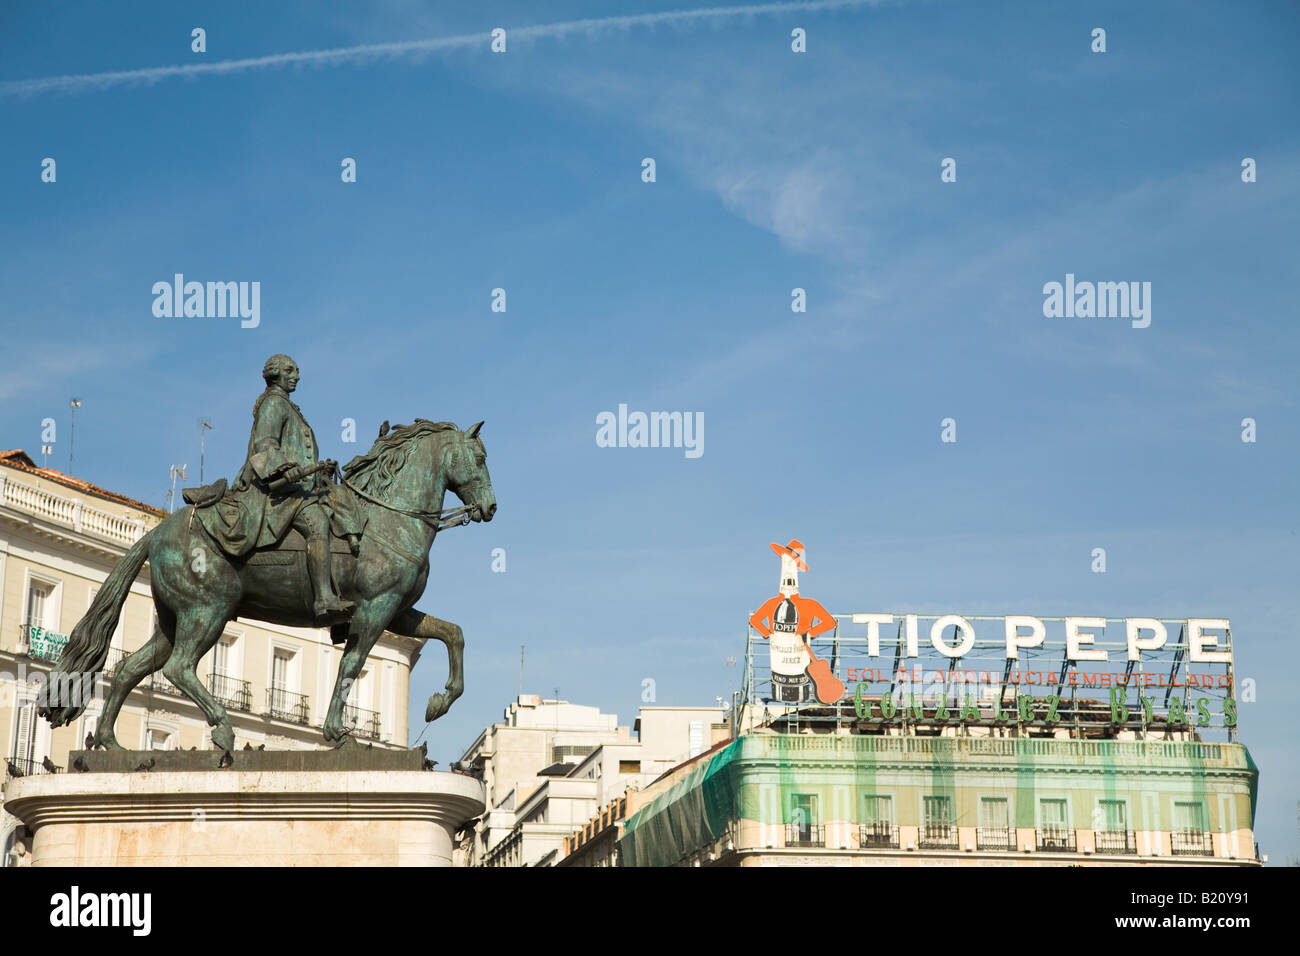 SPAIN Madrid Statue of Mounted King Charles III in Puerto del Sol plaza with Tio Pepe sign Stock Photo